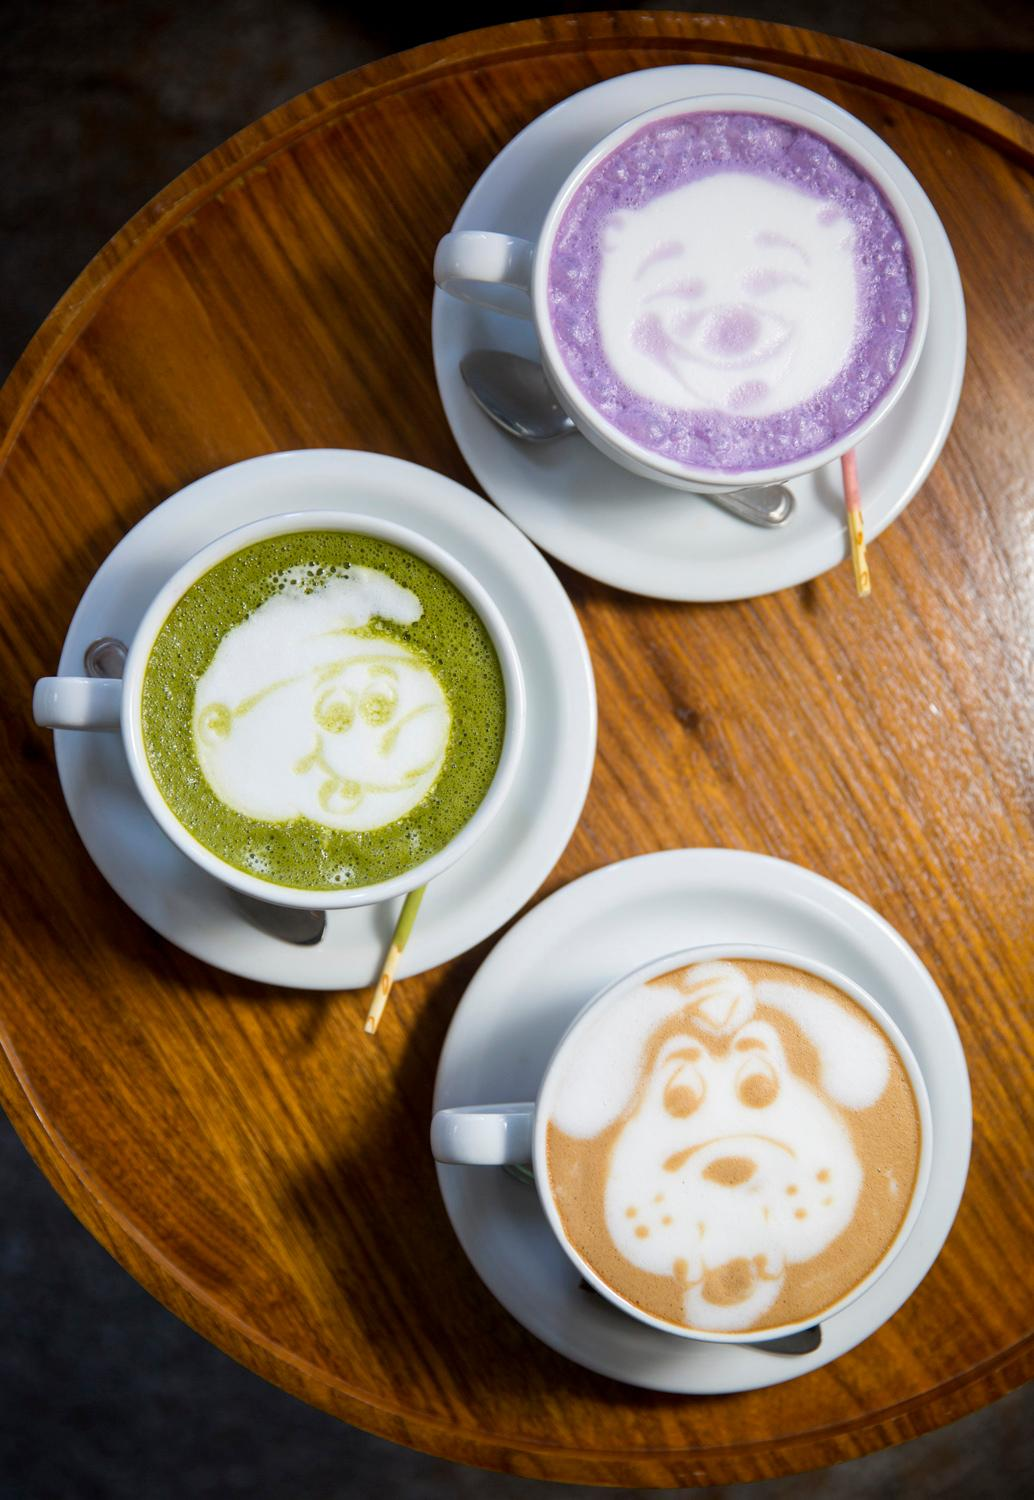 One location we couldn't miss for International Coffee Day was Moore Coffee, located at 1930 2nd Ave. The coffee shop specializes in latte art and will even do creative drawings on top of macha or taro lattes. (Sy Bean / Seattle Refined)